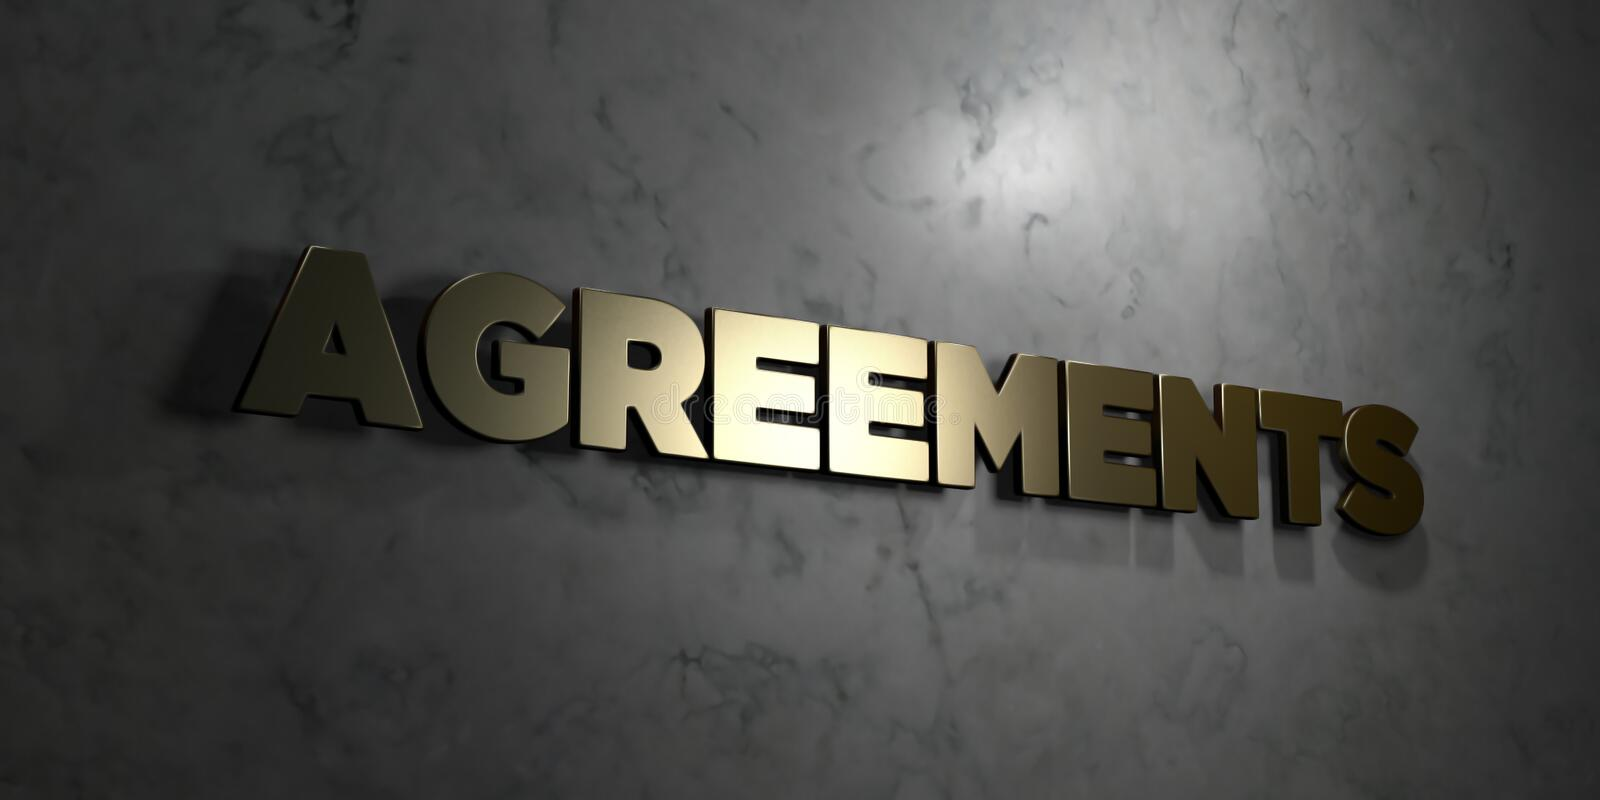 Agreements - Gold text on black background - 3D rendered royalty free stock picture. This image can be used for an online website banner ad or a print postcard royalty free illustration